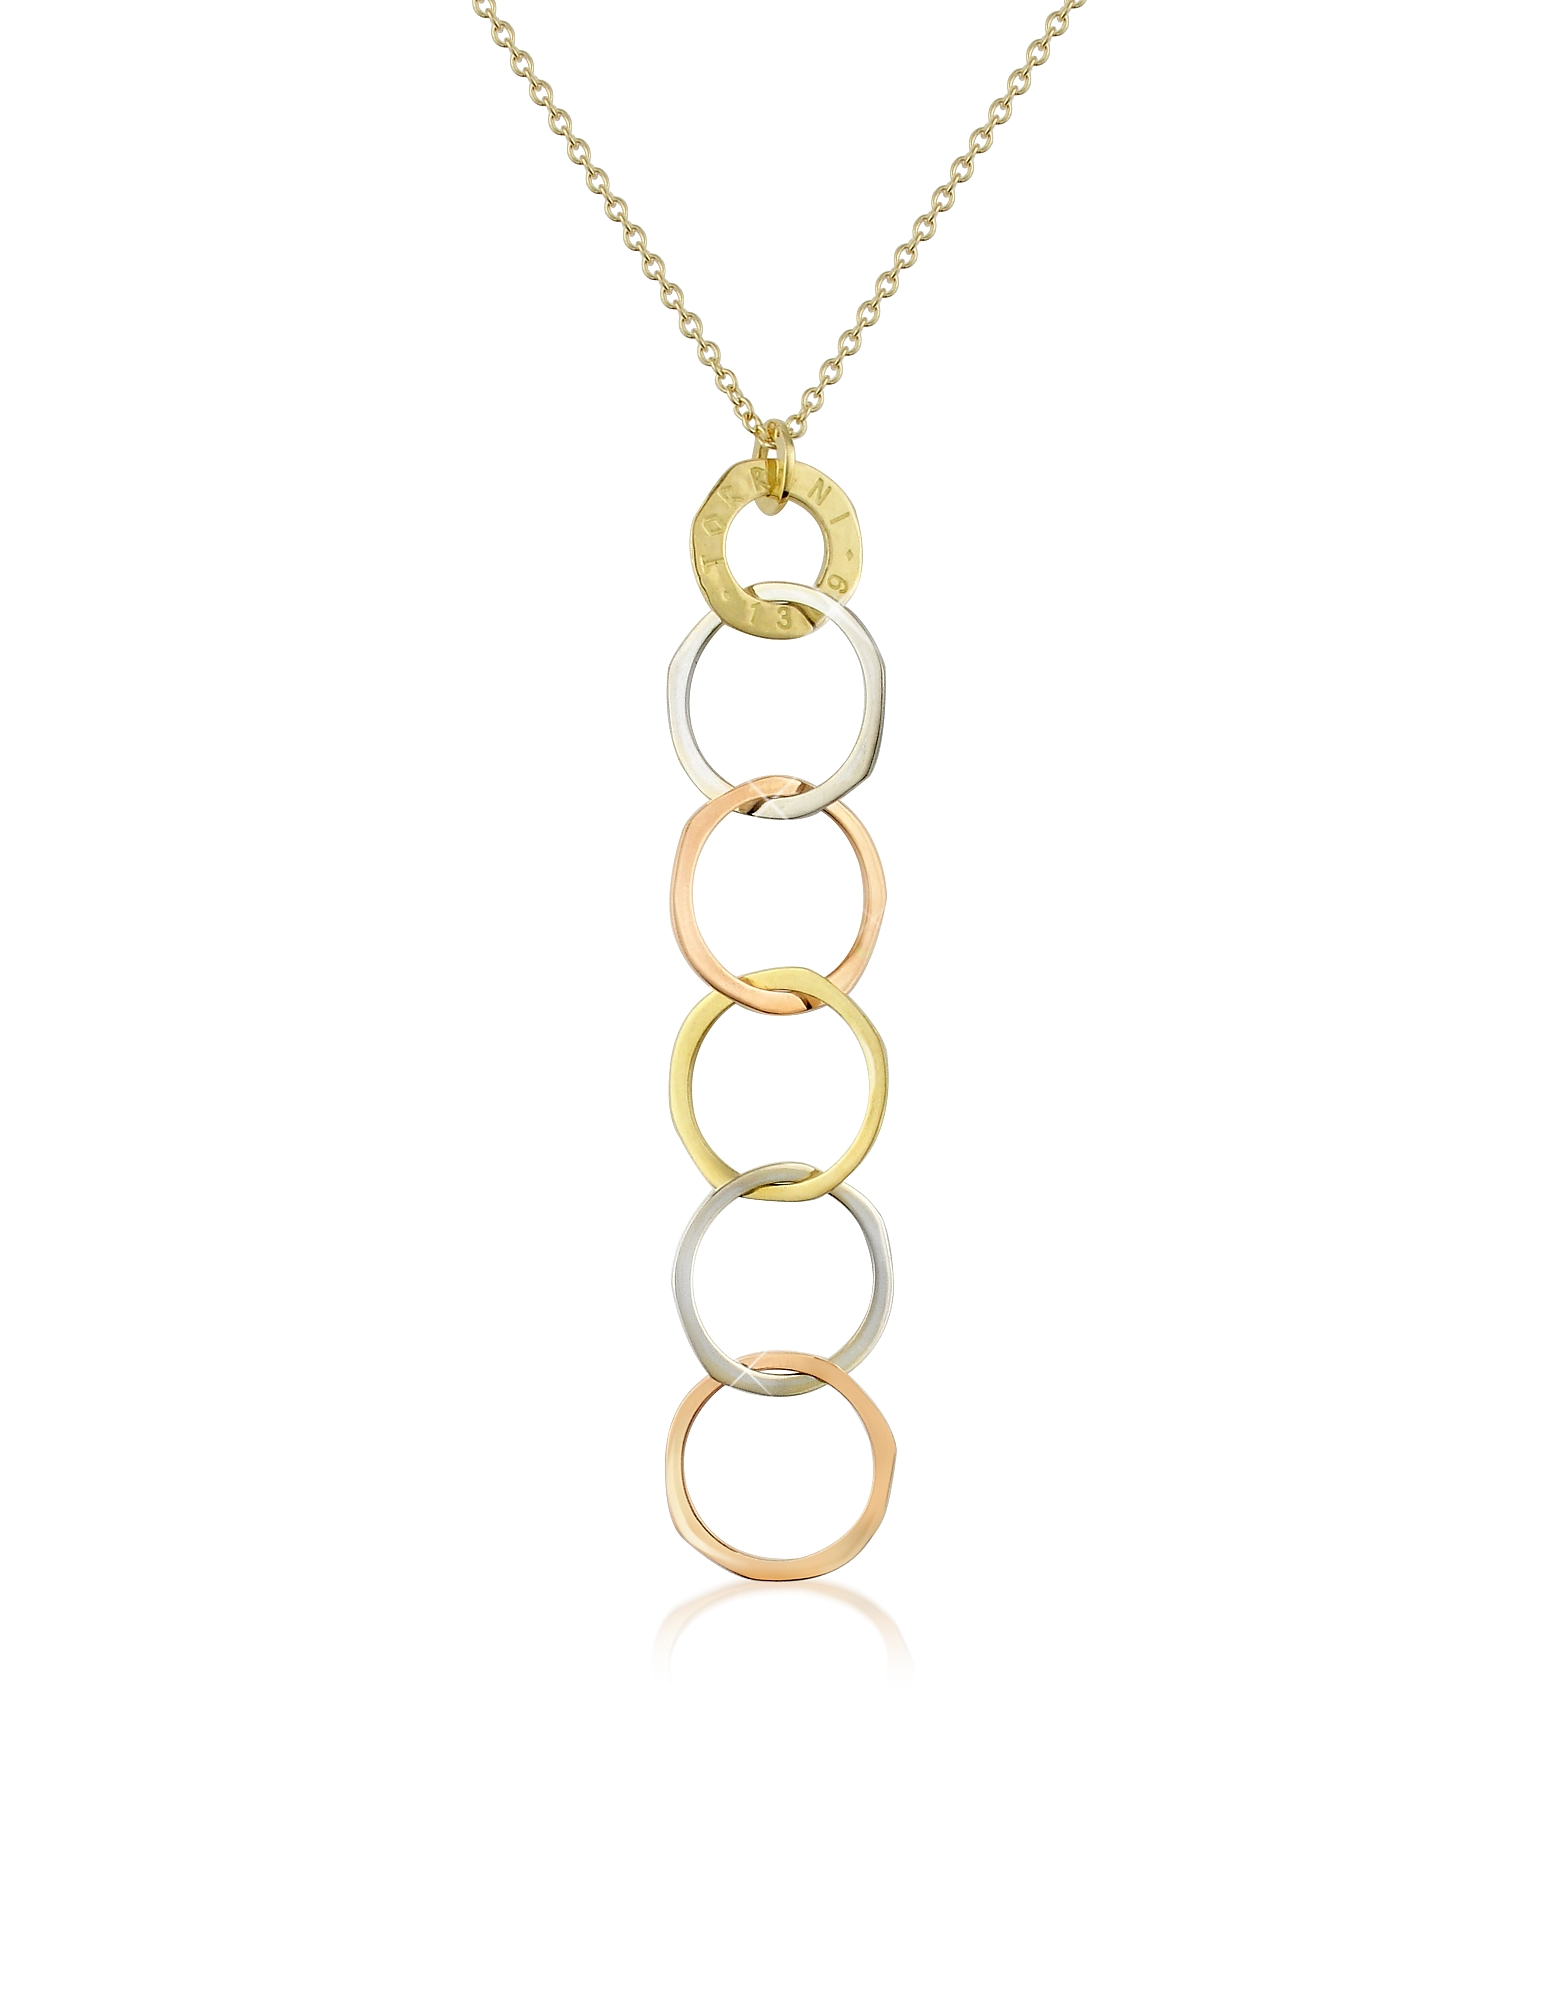 Torrini Necklaces, Fiesole - Three-tone 18K Gold Circles Drop Necklace